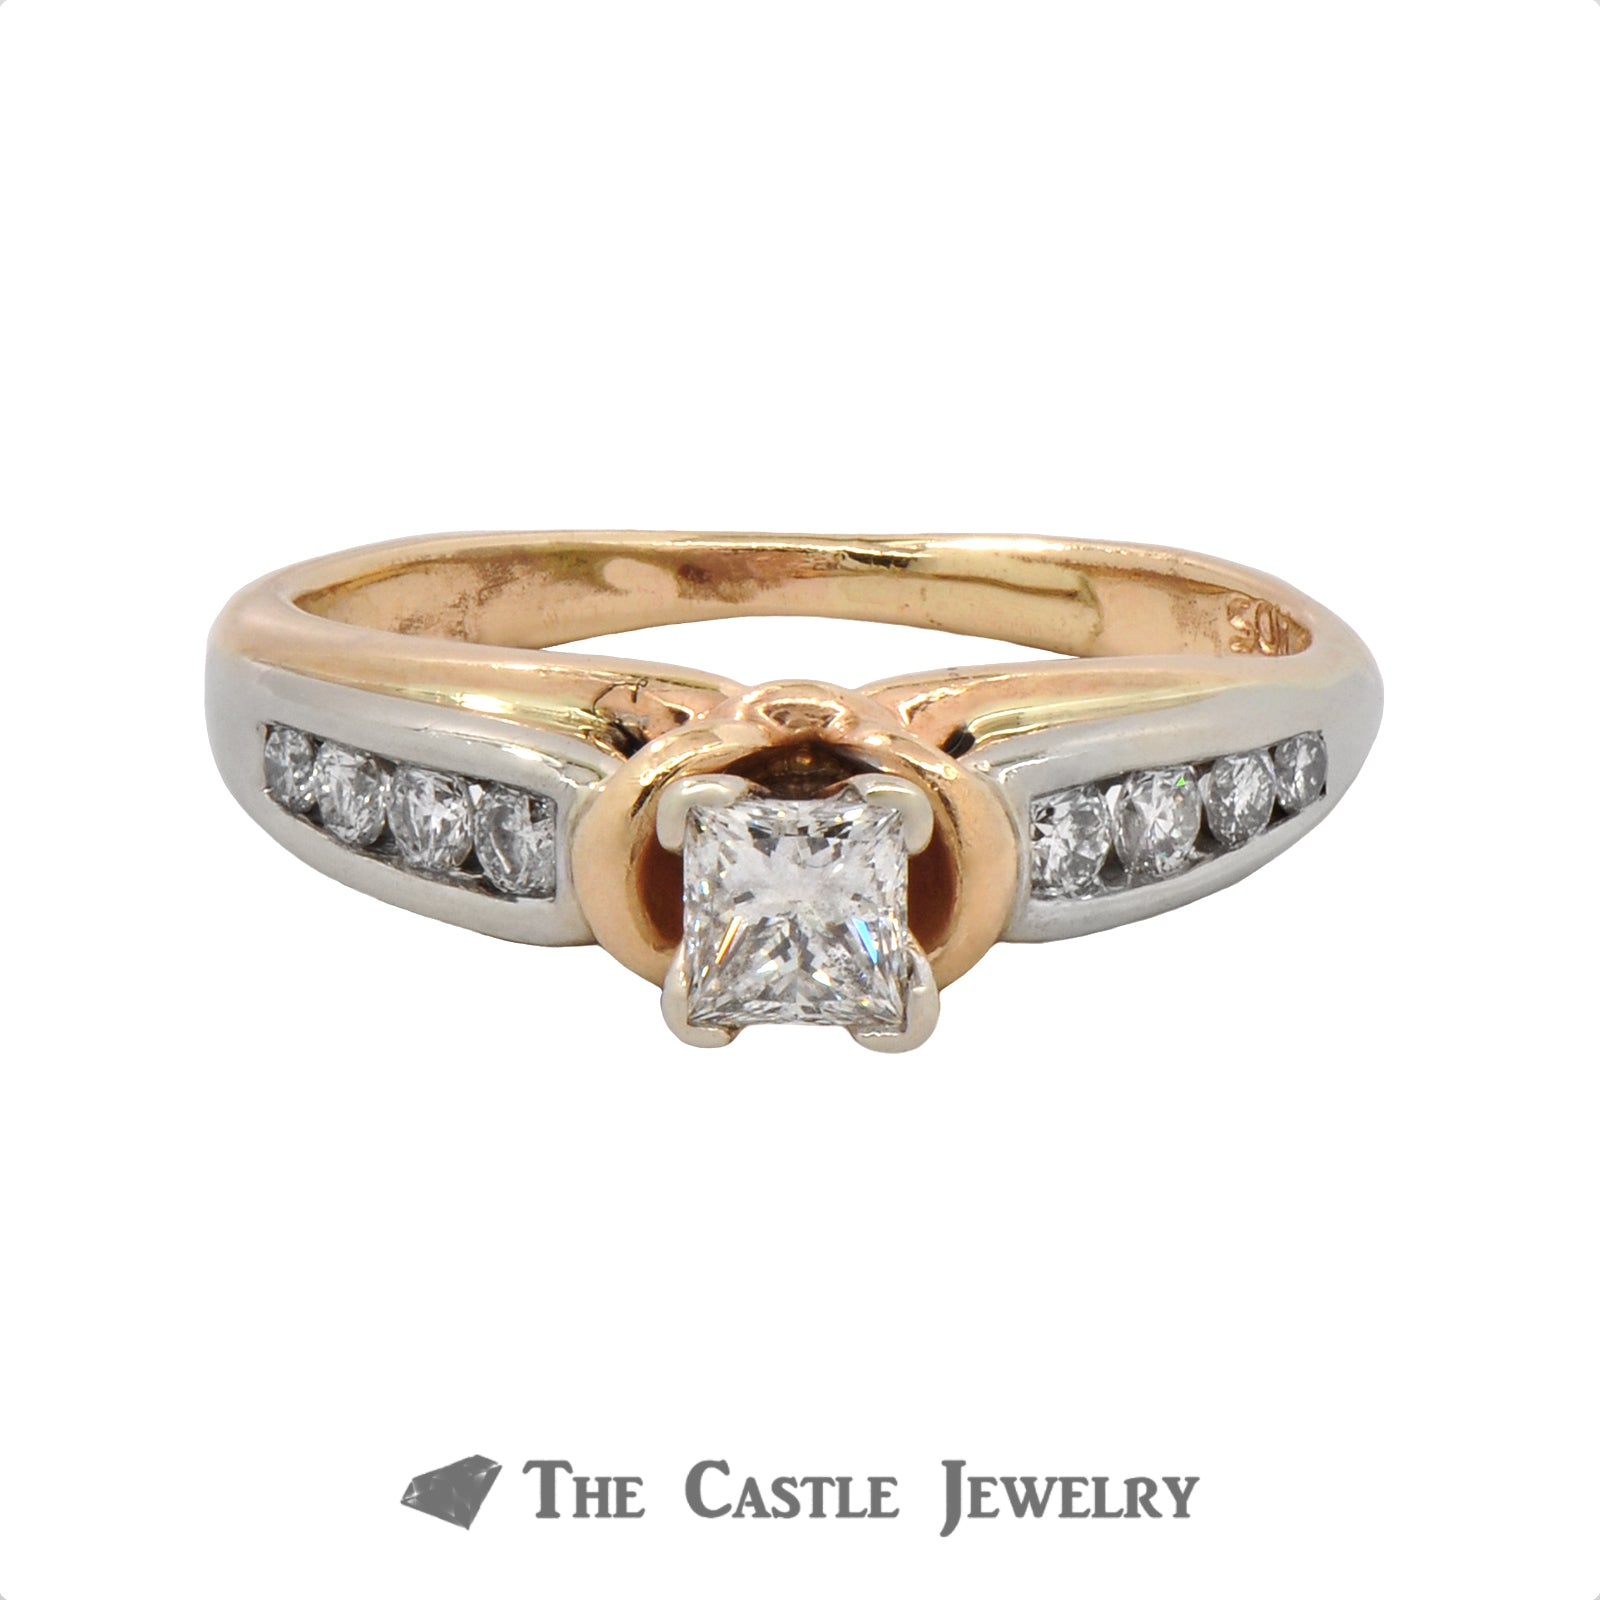 Unique Princess Cut Diamond Engagement Ring with European Shank